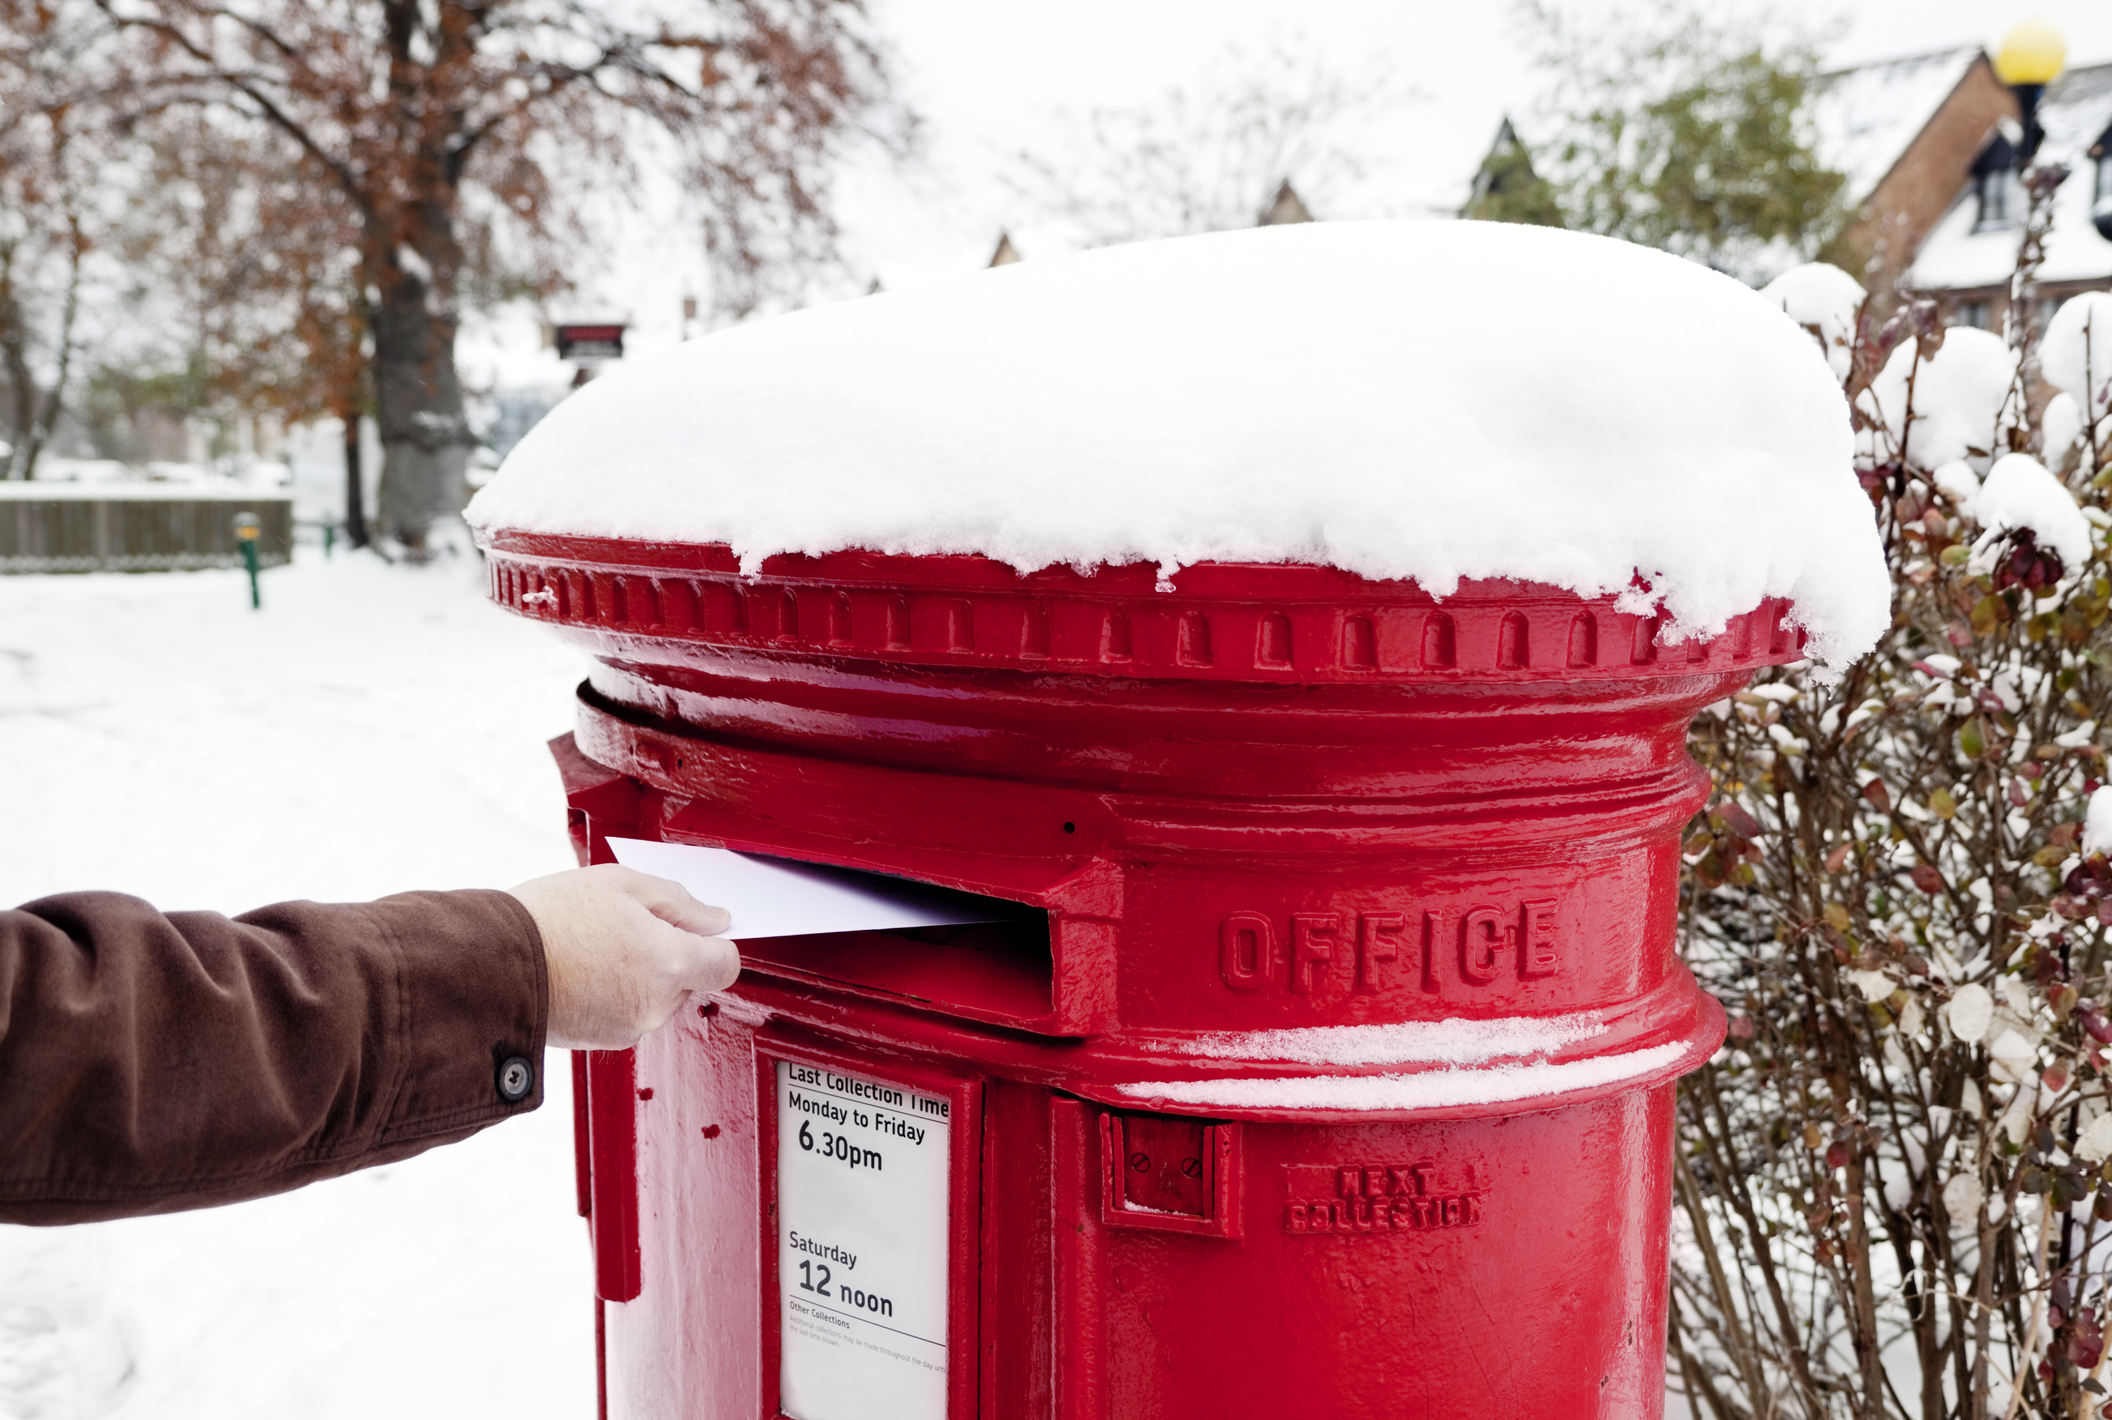 How you can still send your post before Christmas if you miss today's deadline